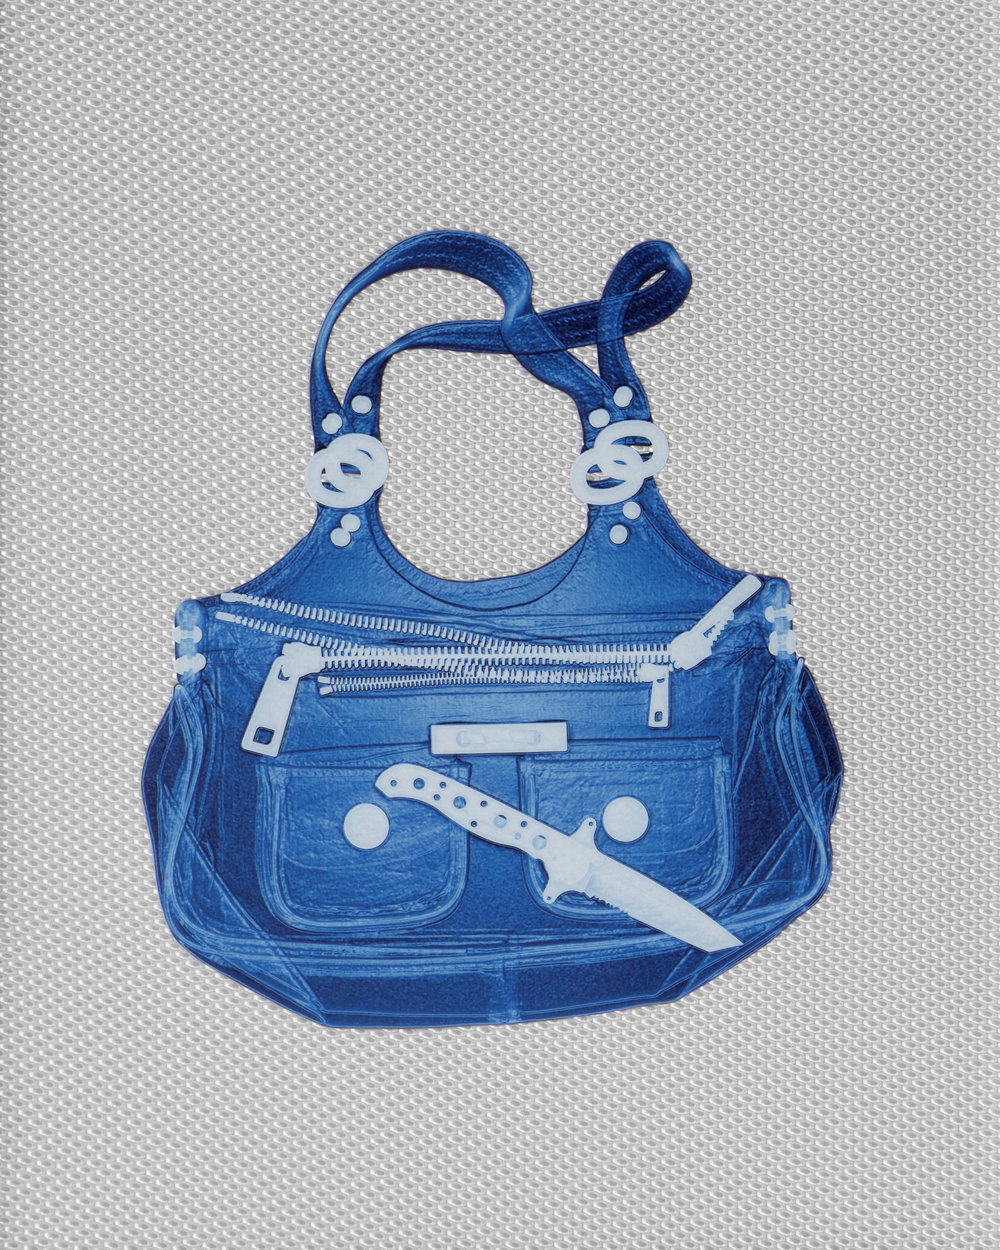 Aqua Marc Jacobs Handbag With Knife